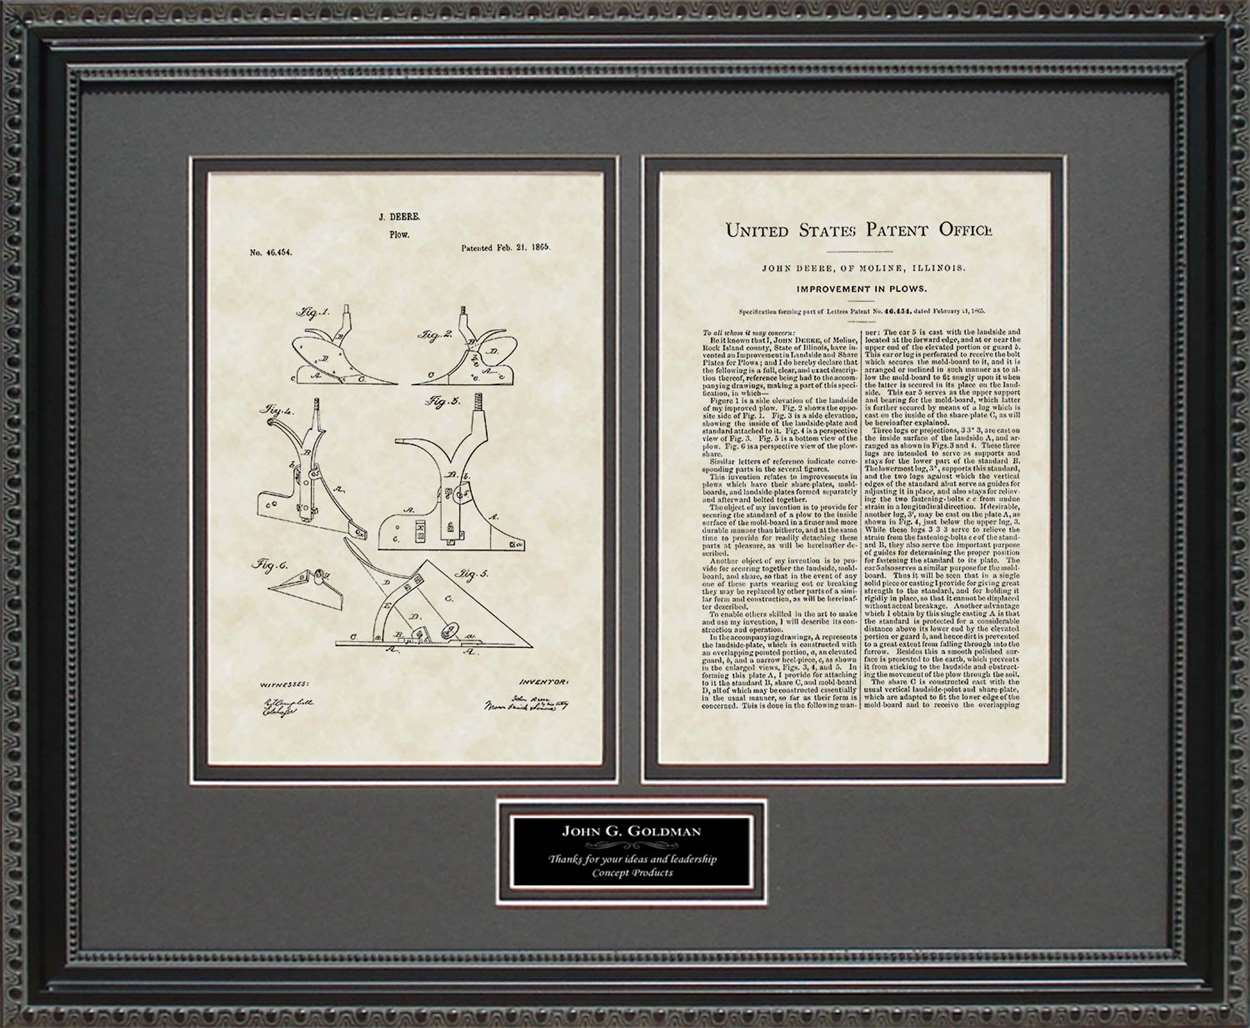 Personalized Plow/Implement Patent, Art & Copy, Deere, 1865